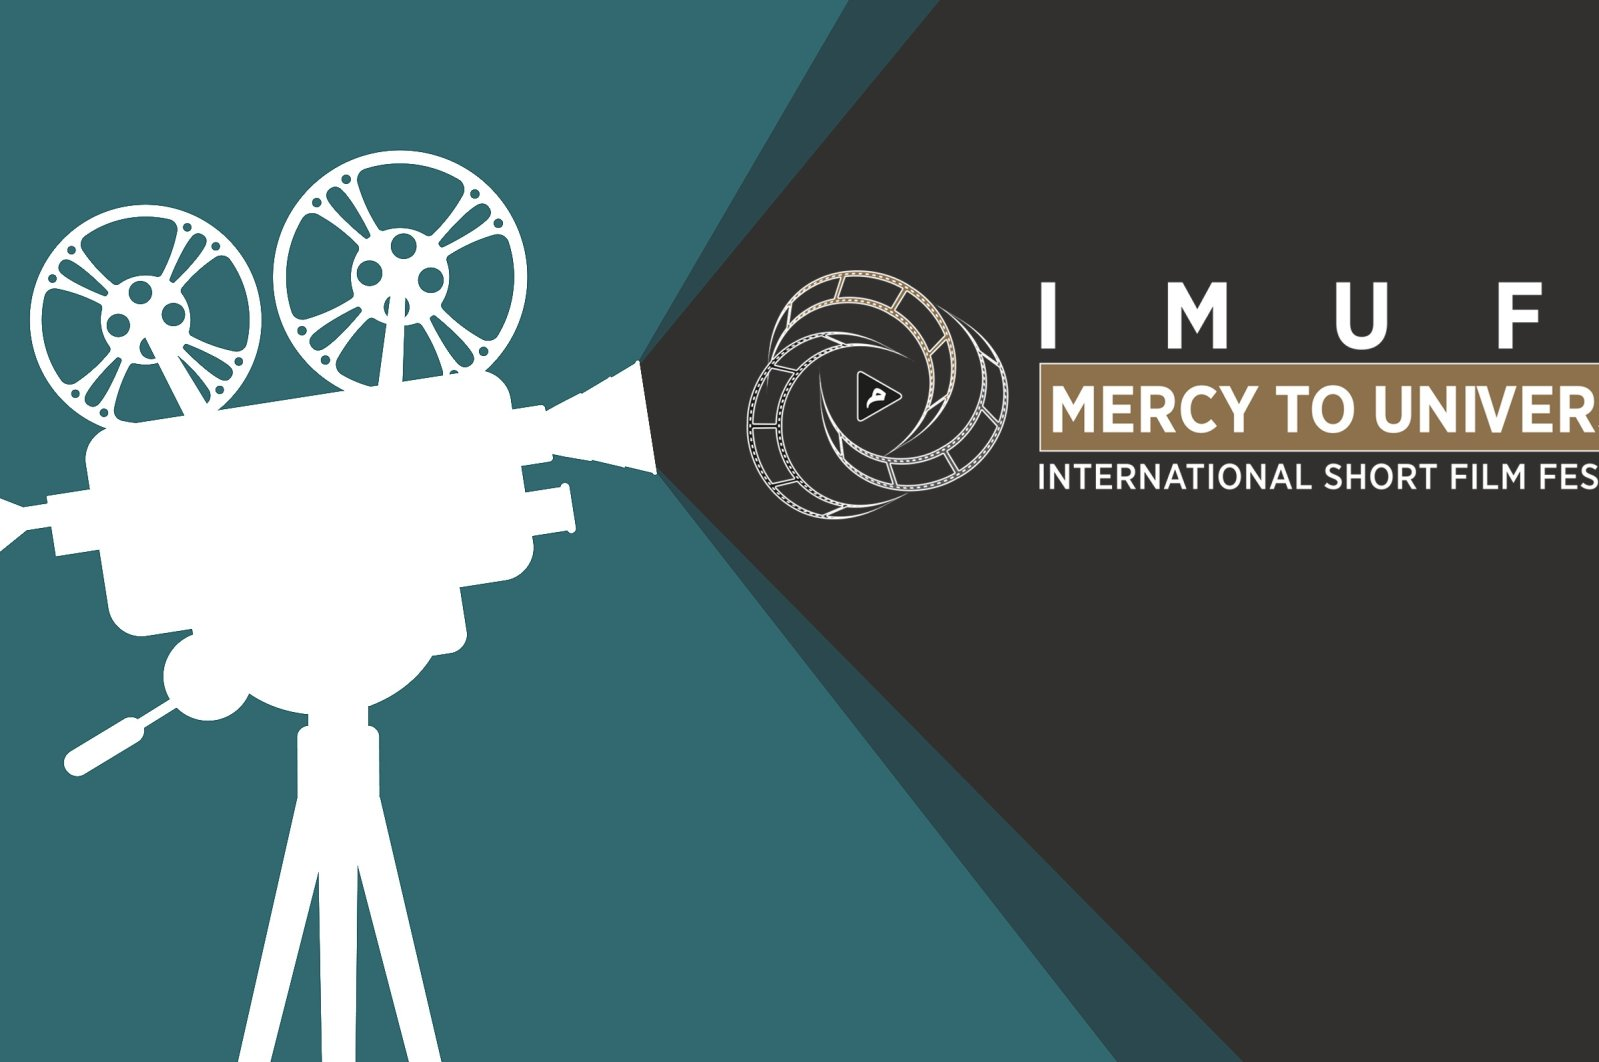 The 7th Mercy to Universe International Short Film Festival will be held between Nov. 21-27.(Illustration by Daily Sabah)